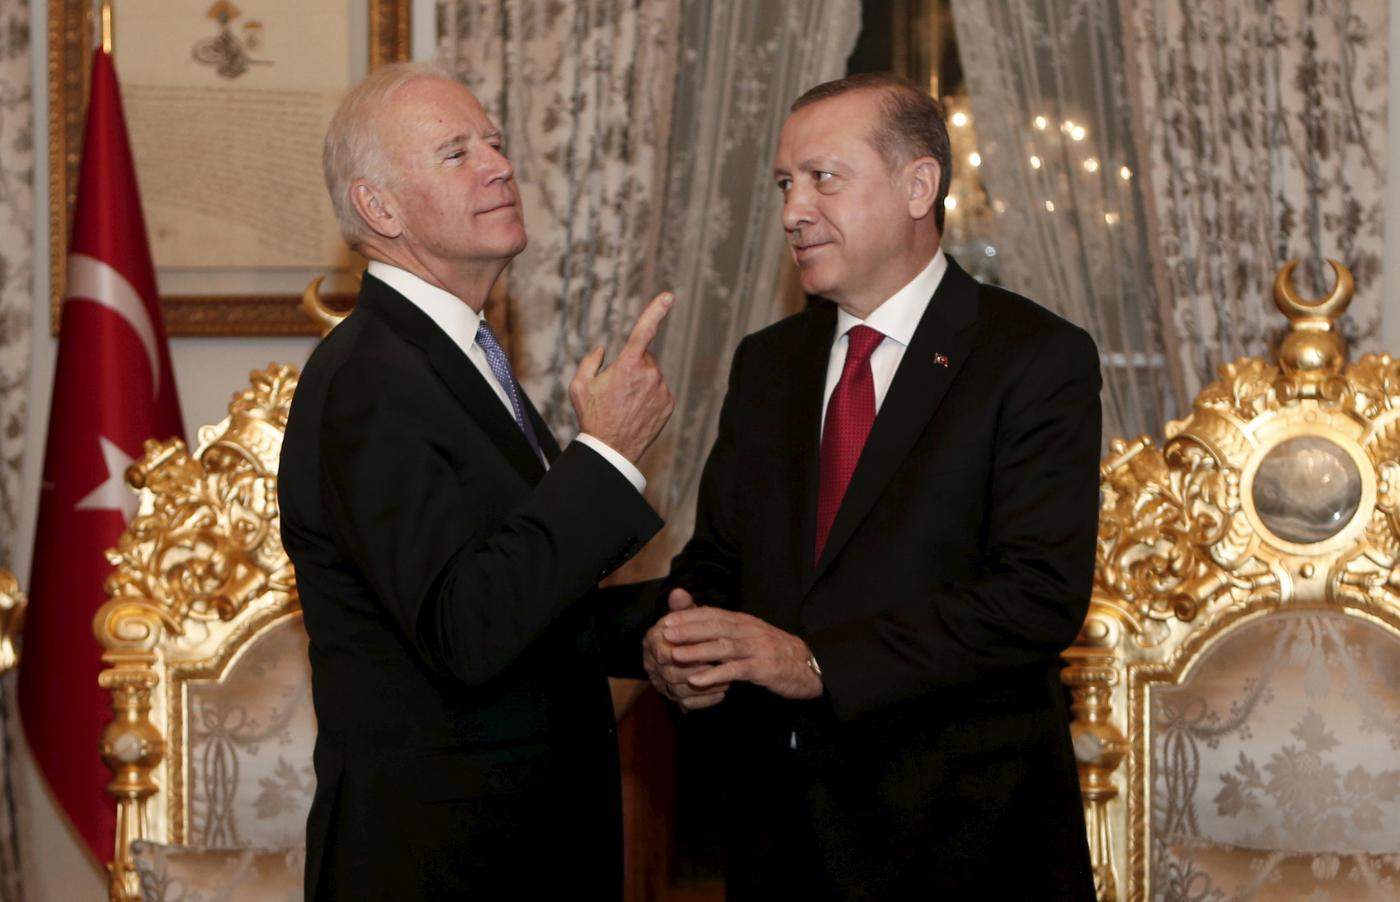 Biden cold shoulders Erdogan as request for call left unanswered